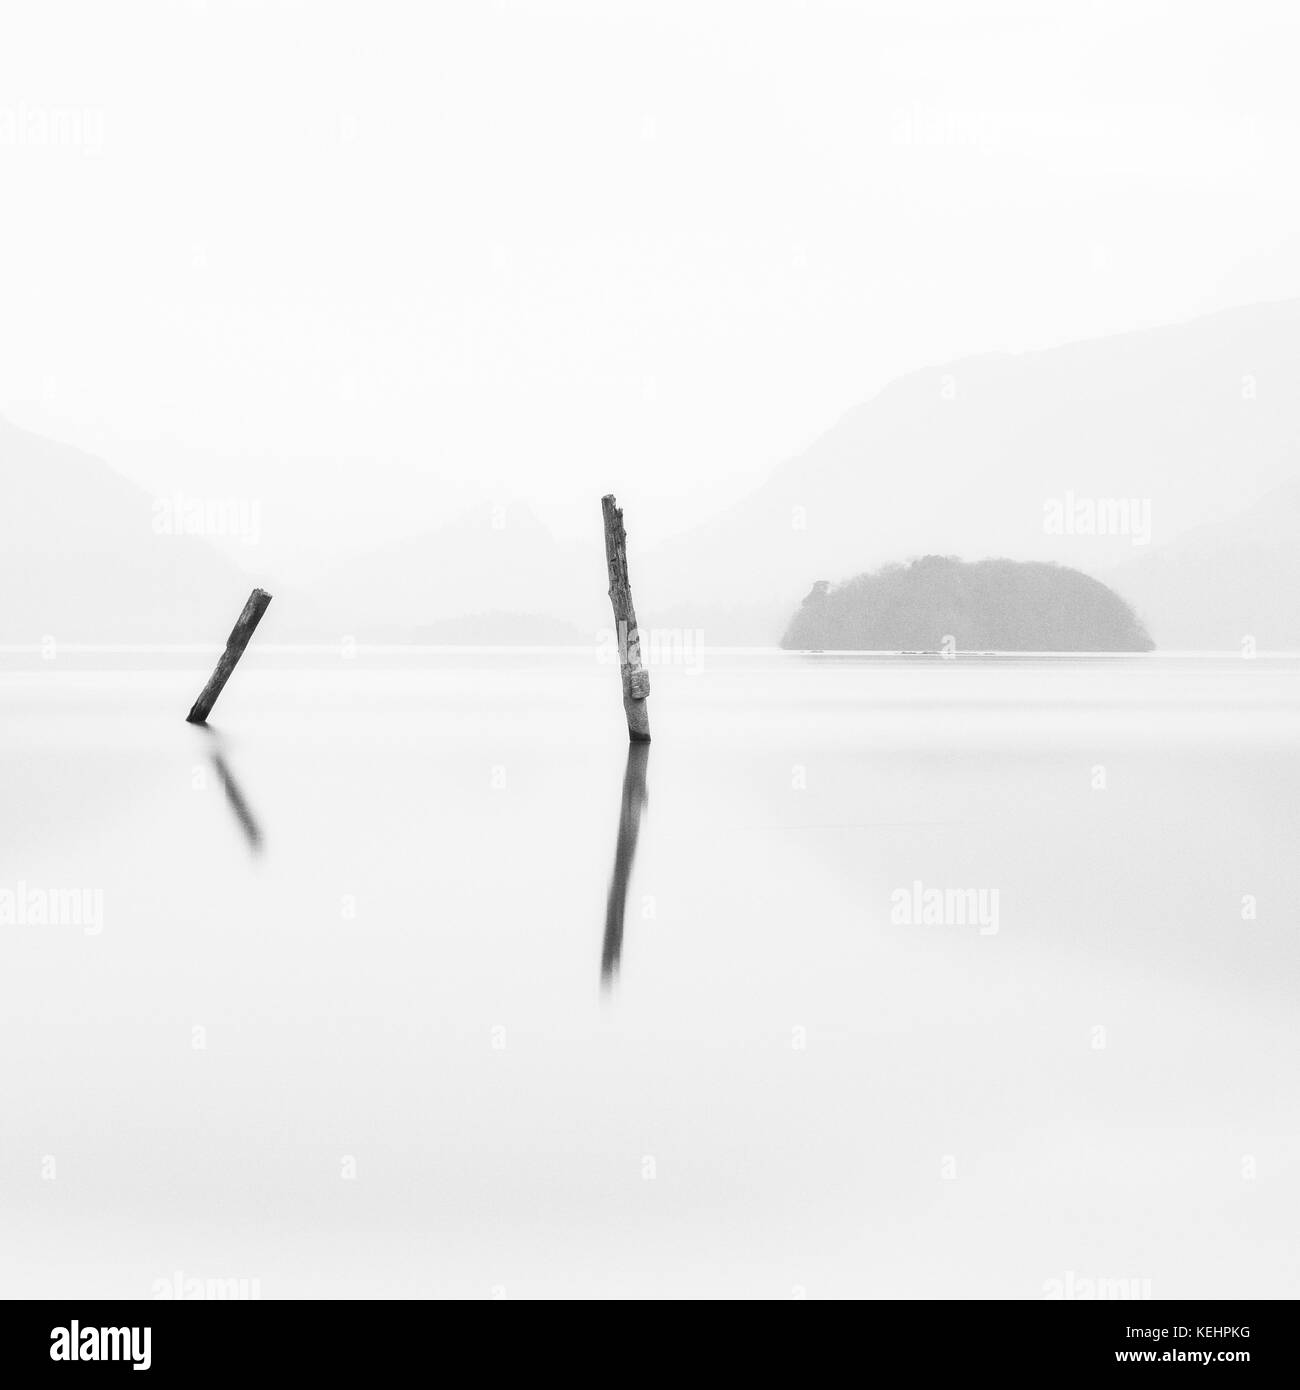 Deux postes Derwentwater Foggy Lake District méditation calme paisible Photo Stock